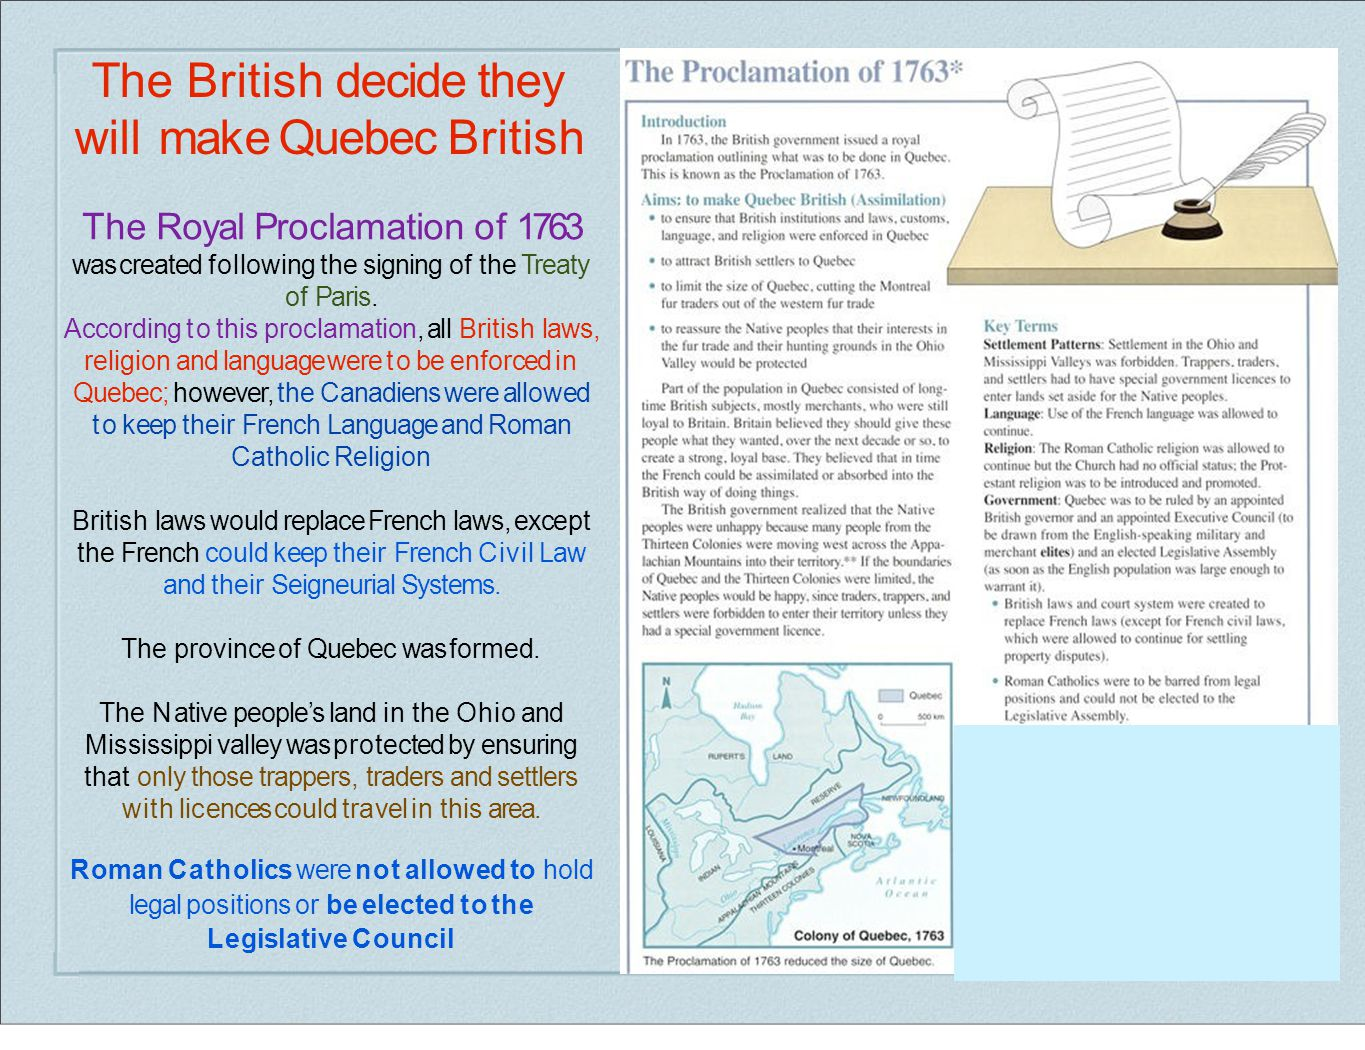 The British decide they will make Quebec British The Royal Proclamation of 1763 was created following the signing of the Treaty of Paris. According to